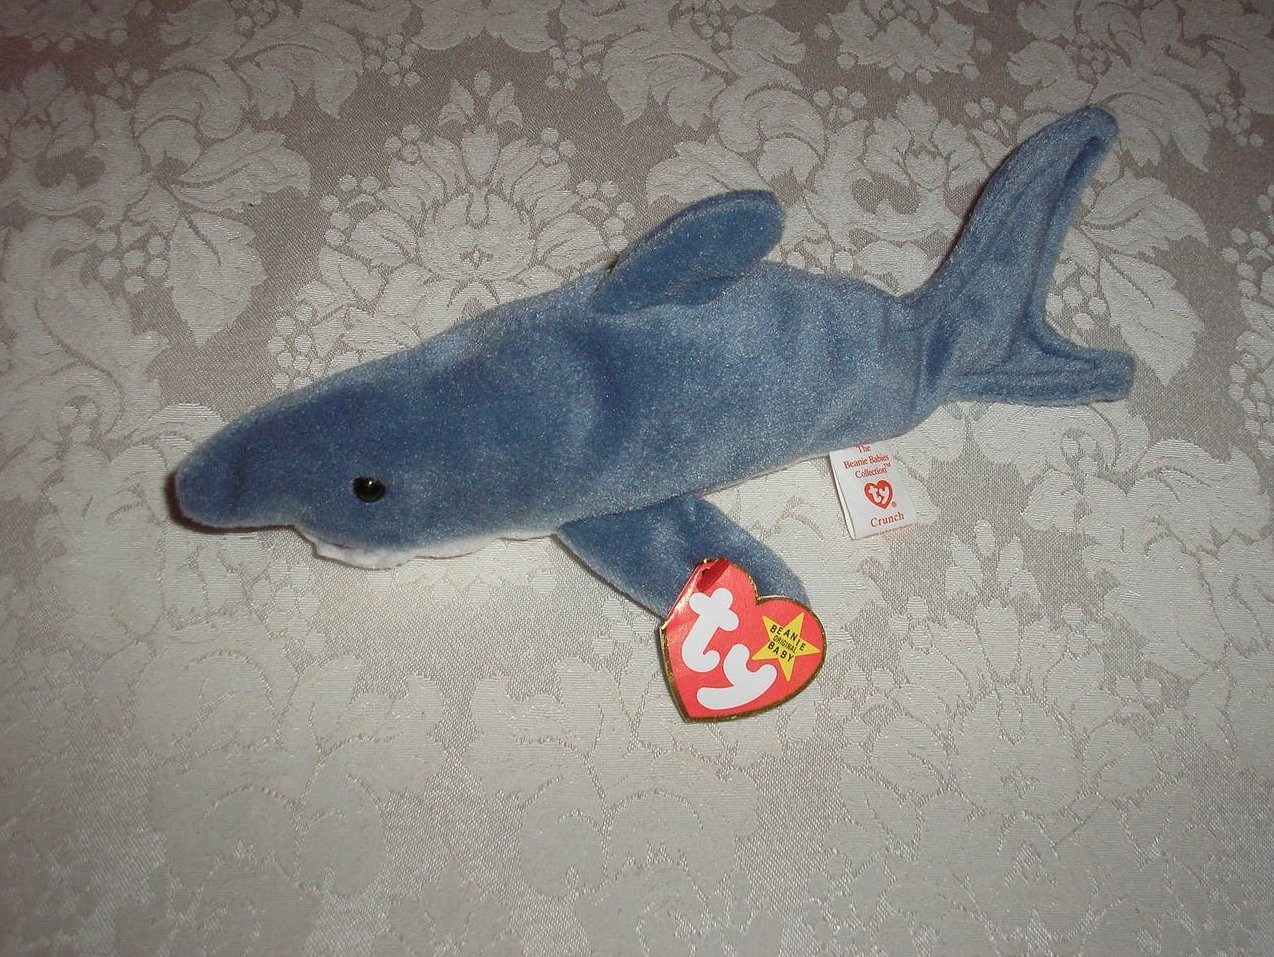 Ty Original Beanie Baby Crunch Shark January 13, 1996